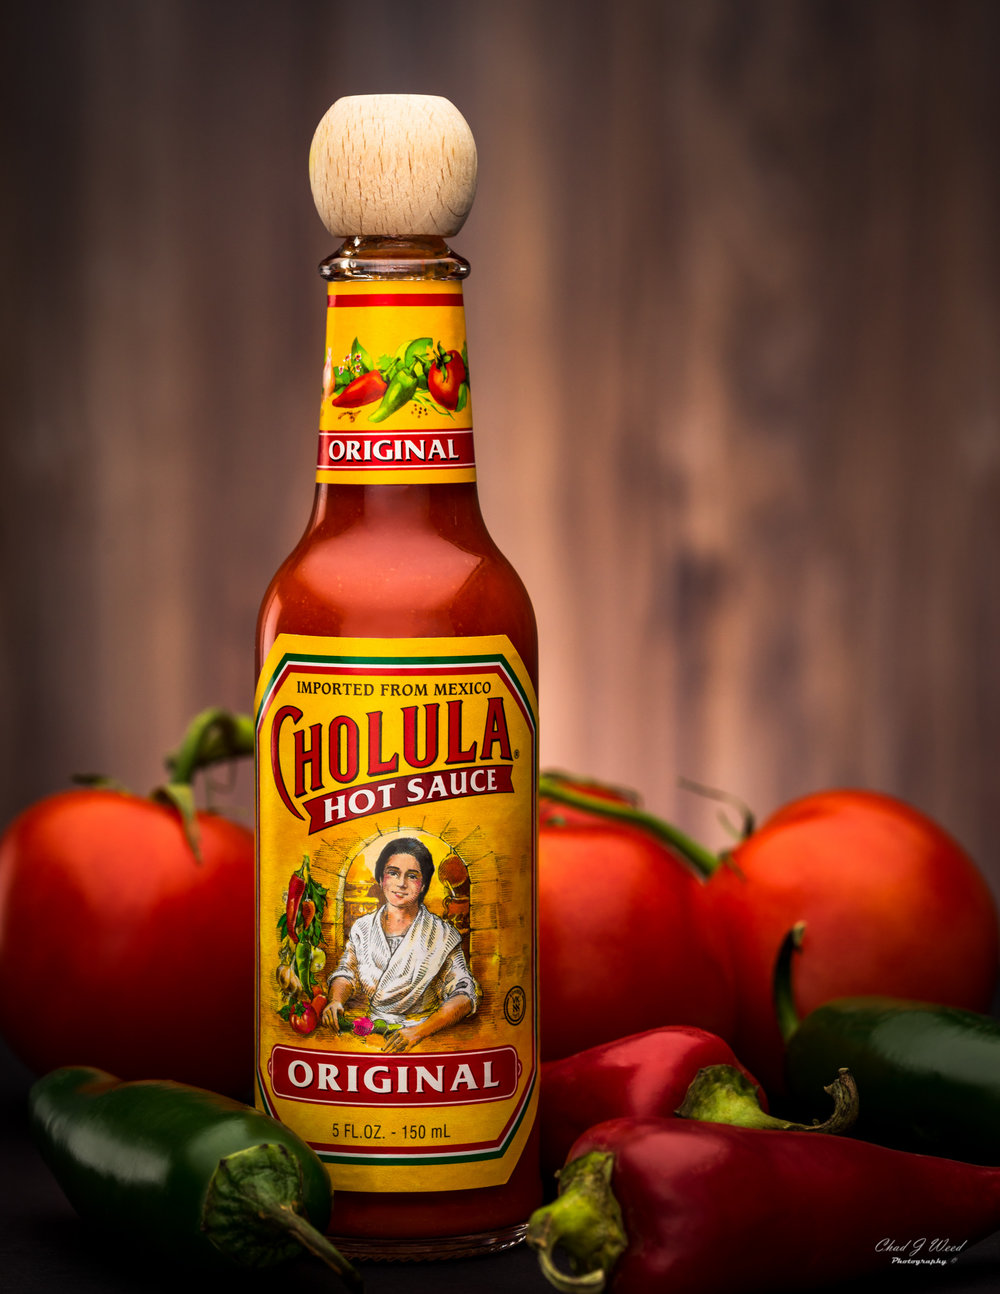 Original Cholula Hot Sauce Bottle by Arizona Commercial Food Photographer Chad J Weed